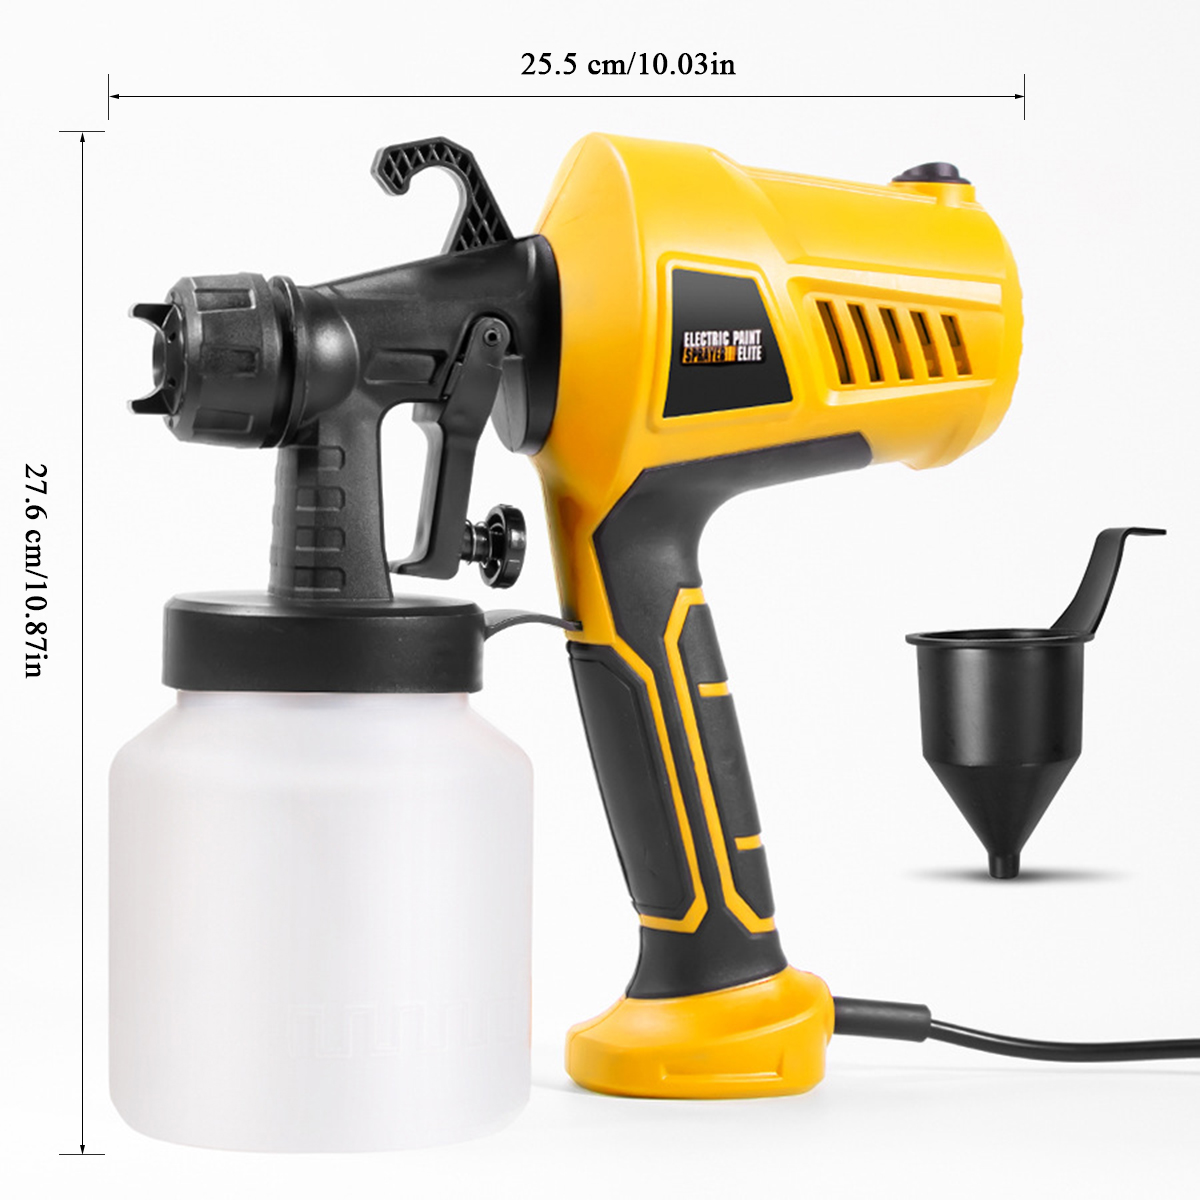 Tools : 28000rpm Spray Gun 400W 220V 110V High Power Home Electric Paint Sprayer 3 Nozzle Easy Spraying and Clean Perfect for Beginner